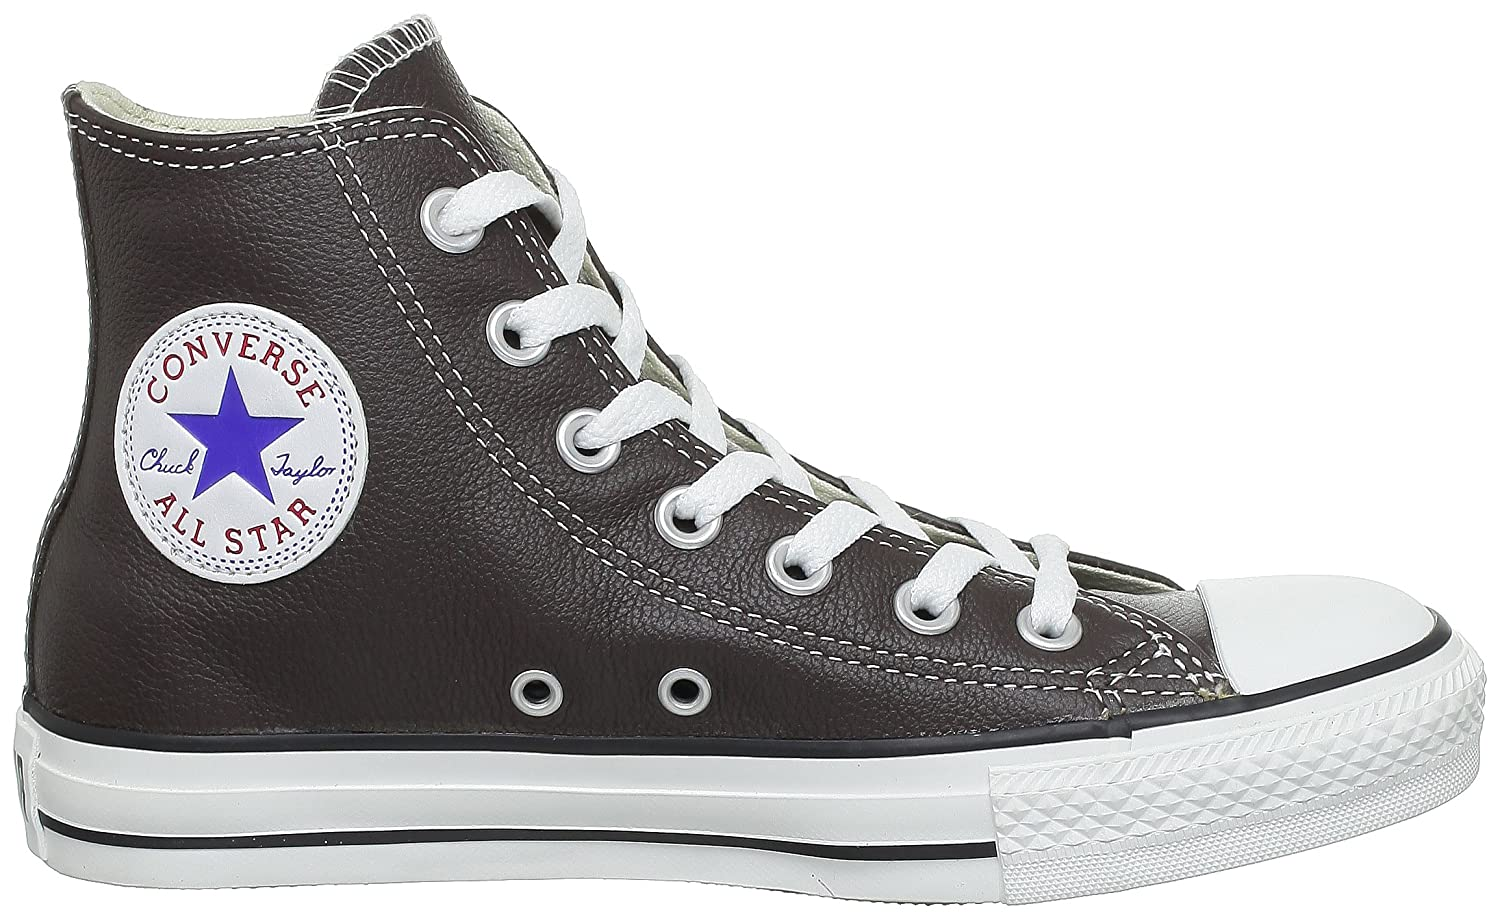 Converse Chuck Taylor All Star Leather High Top Sneaker B006OCAM56 4.5M B(M) US|Chocolate